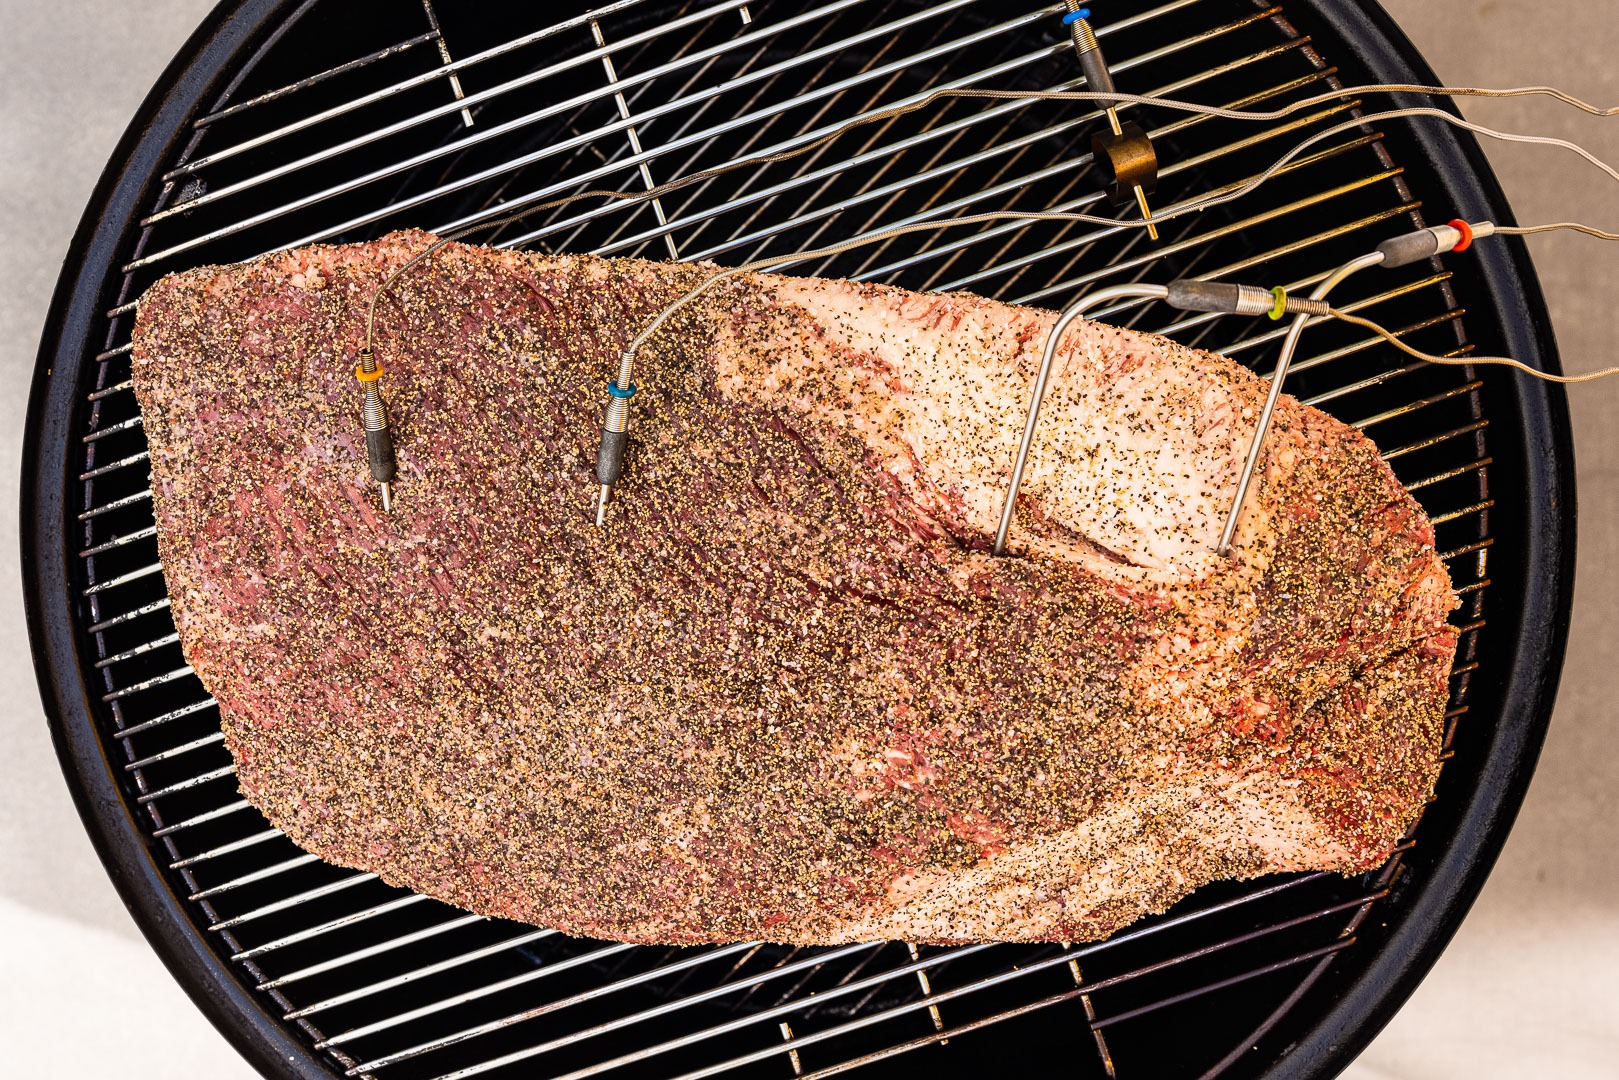 All four probes in the brisket on the smoker